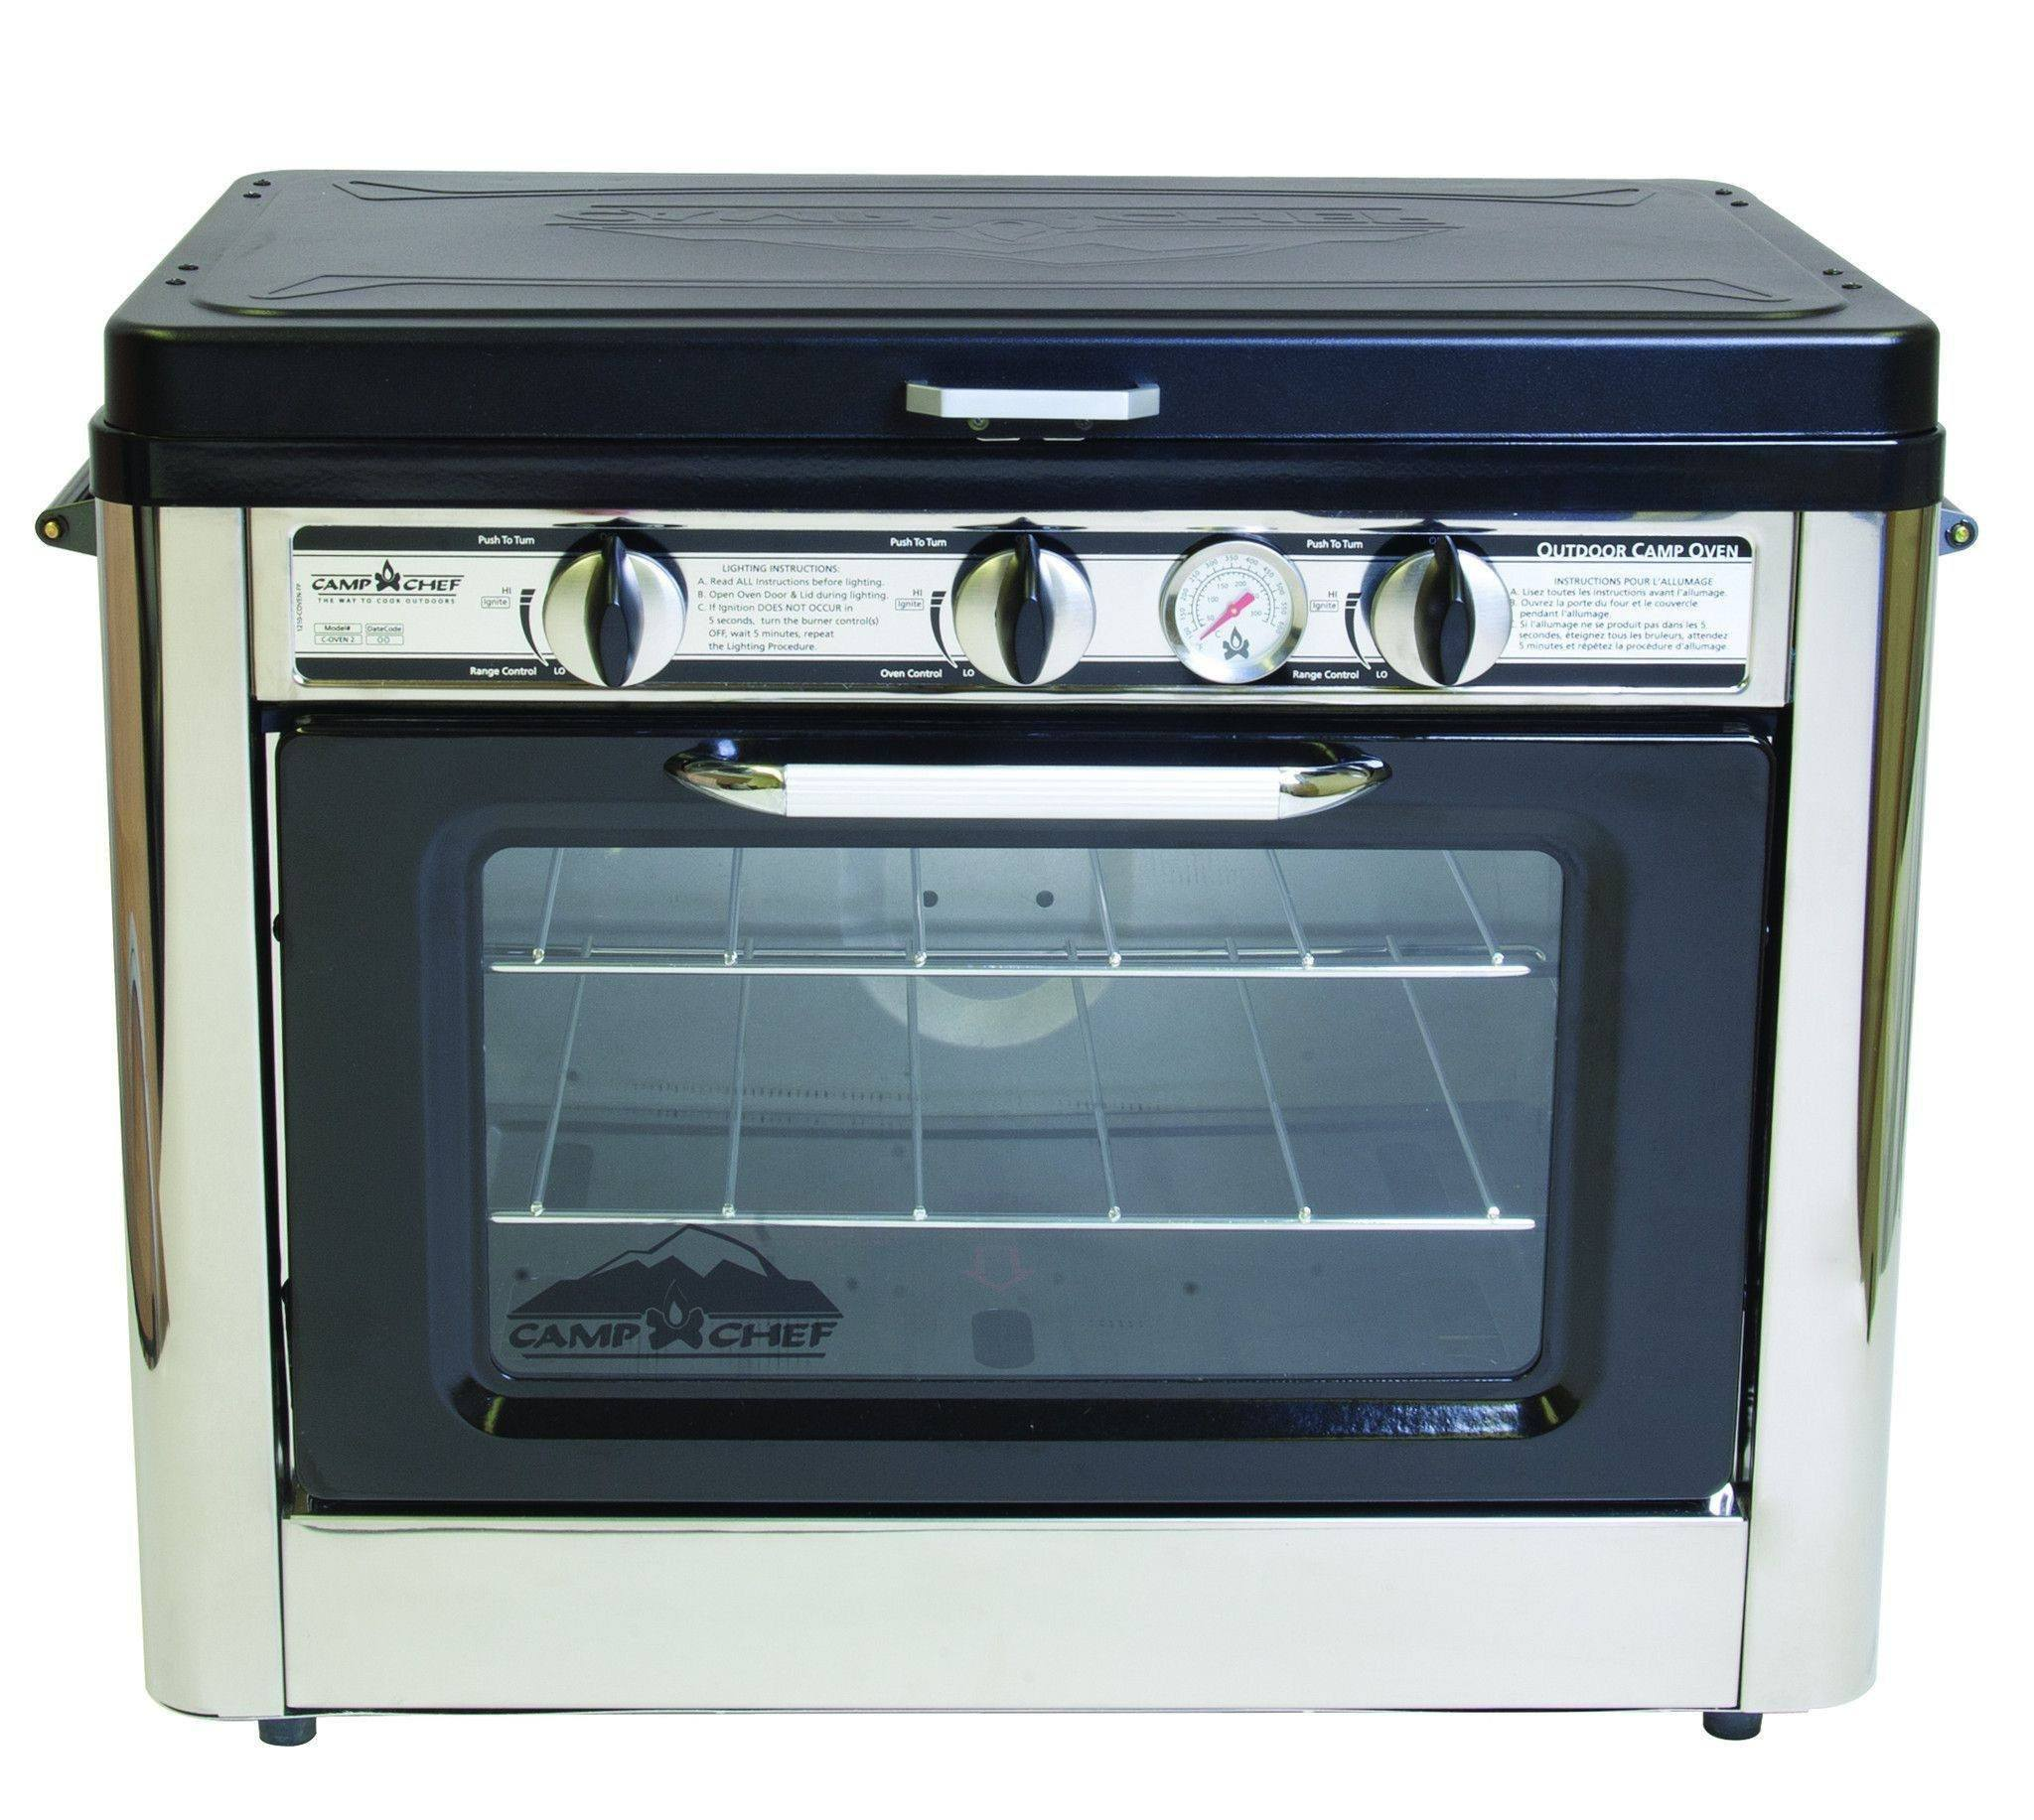 Camp Chef Deluxe Outdoor Oven with 2 Burner Camping Stove Trail